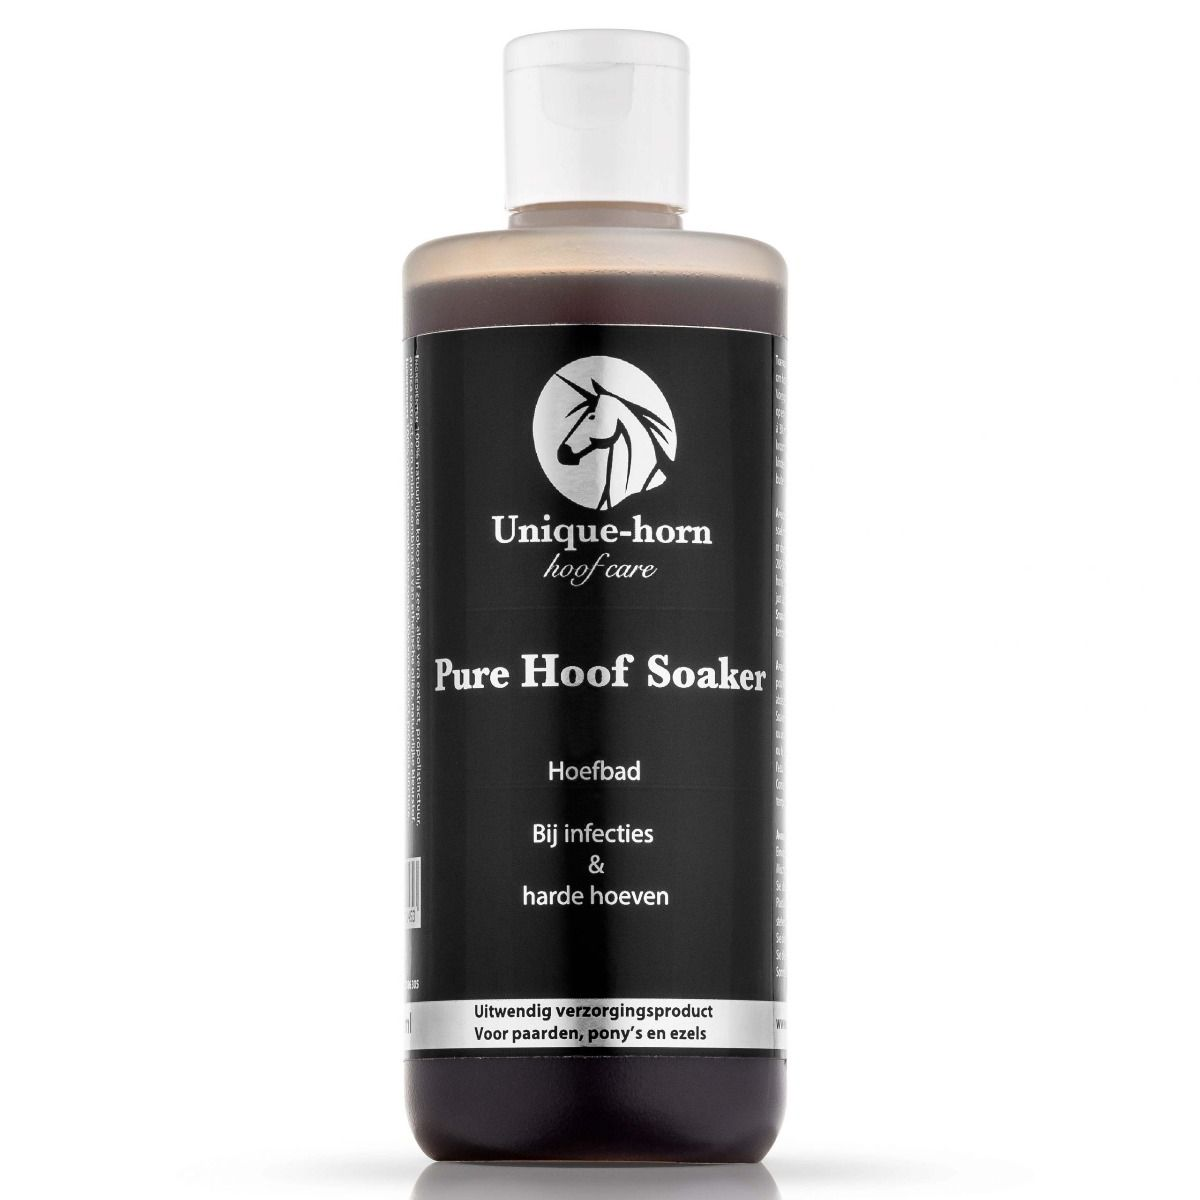 Foto van Unique-horn Pure Hoof Soaker 250ml